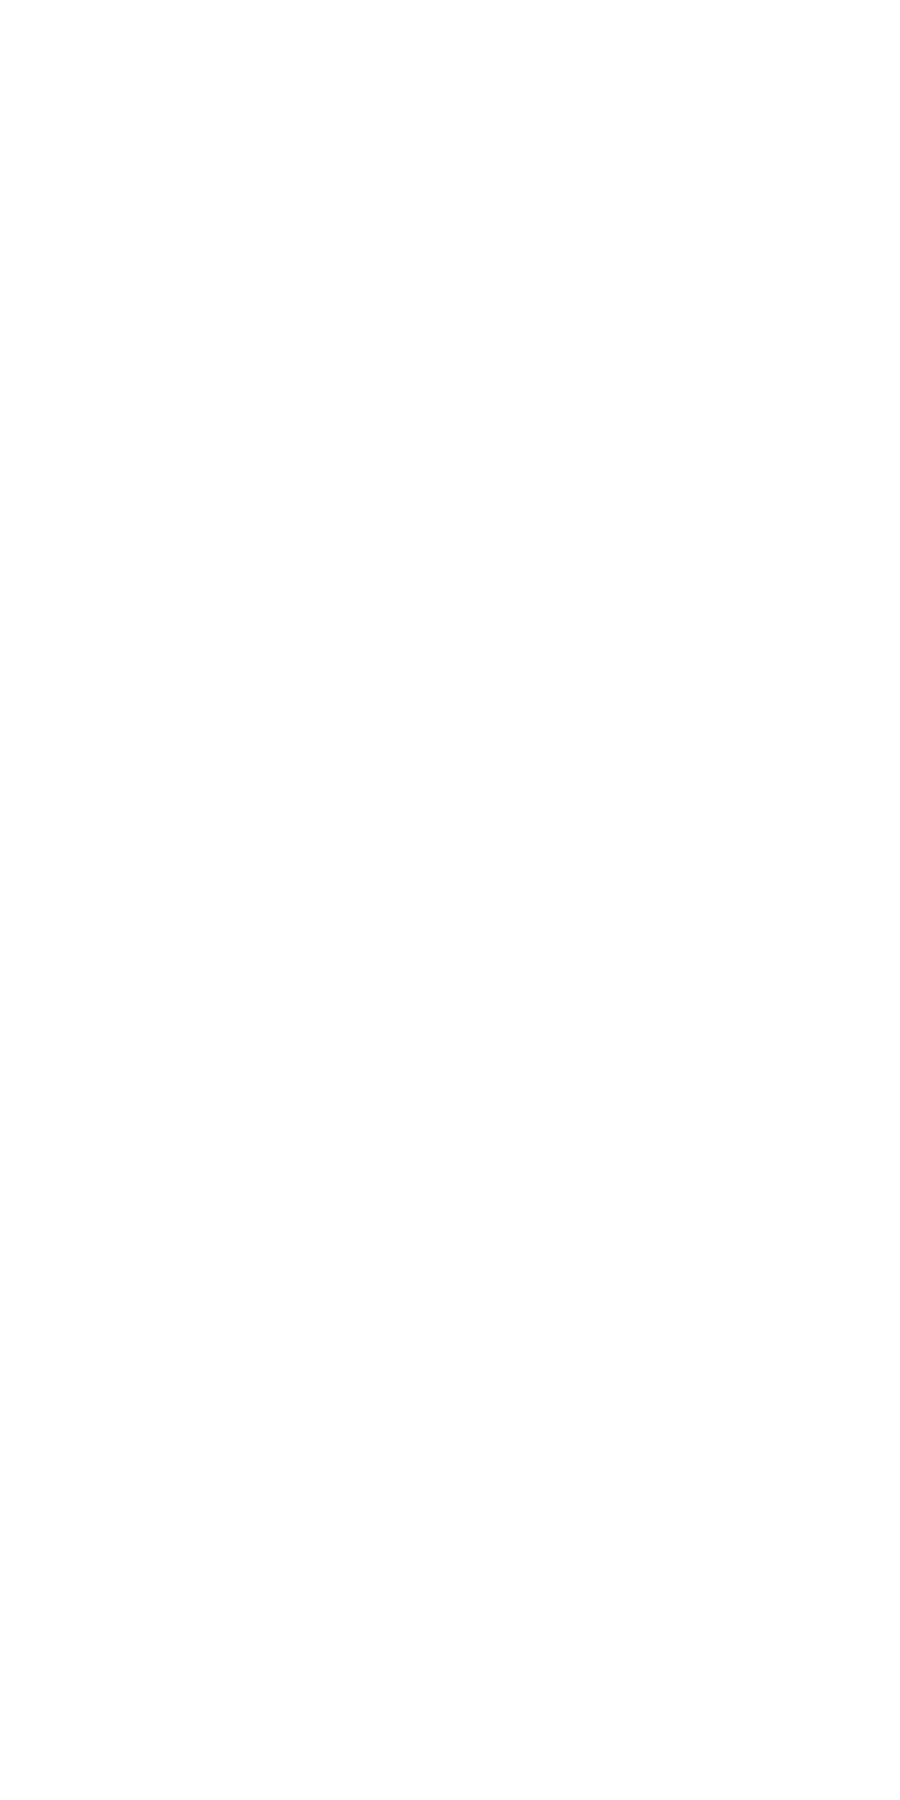 White fade 002 75%.png